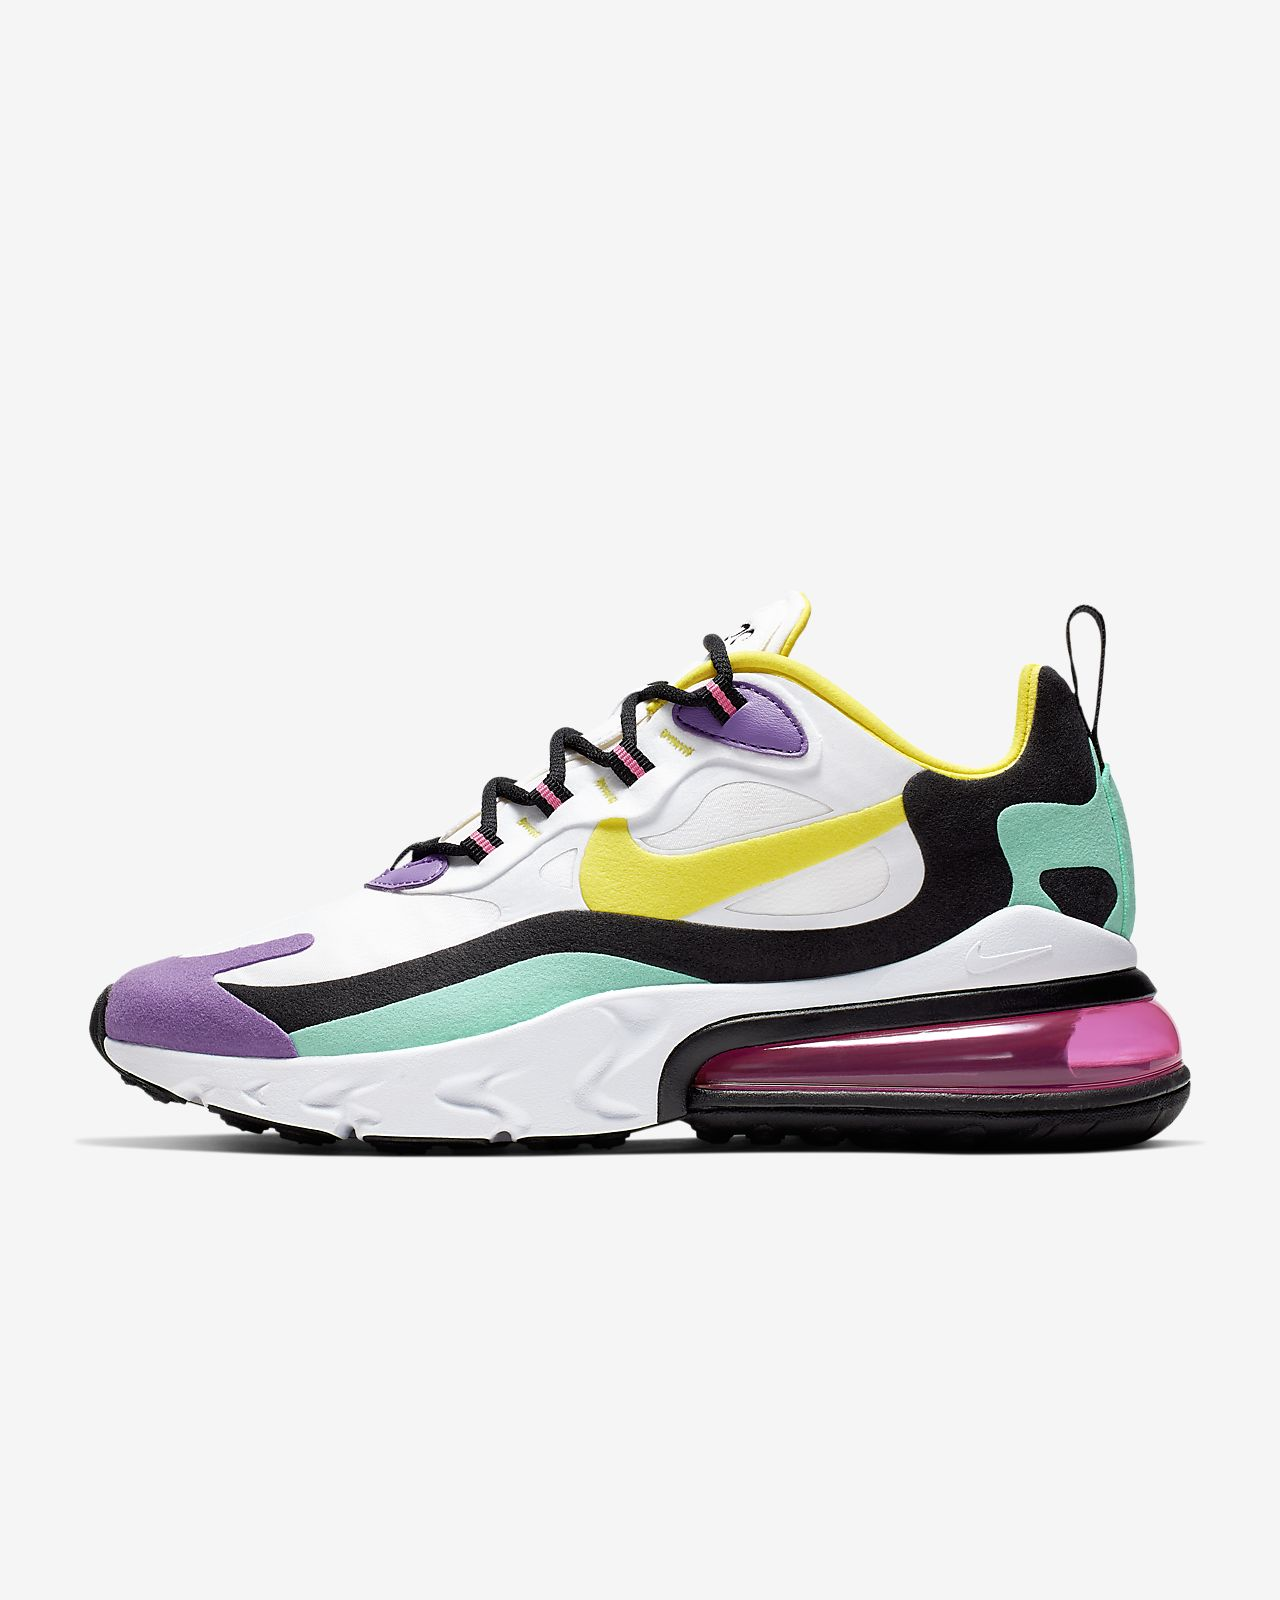 Nike Air Max 270 React (Geometric Abstract) Damenschuh